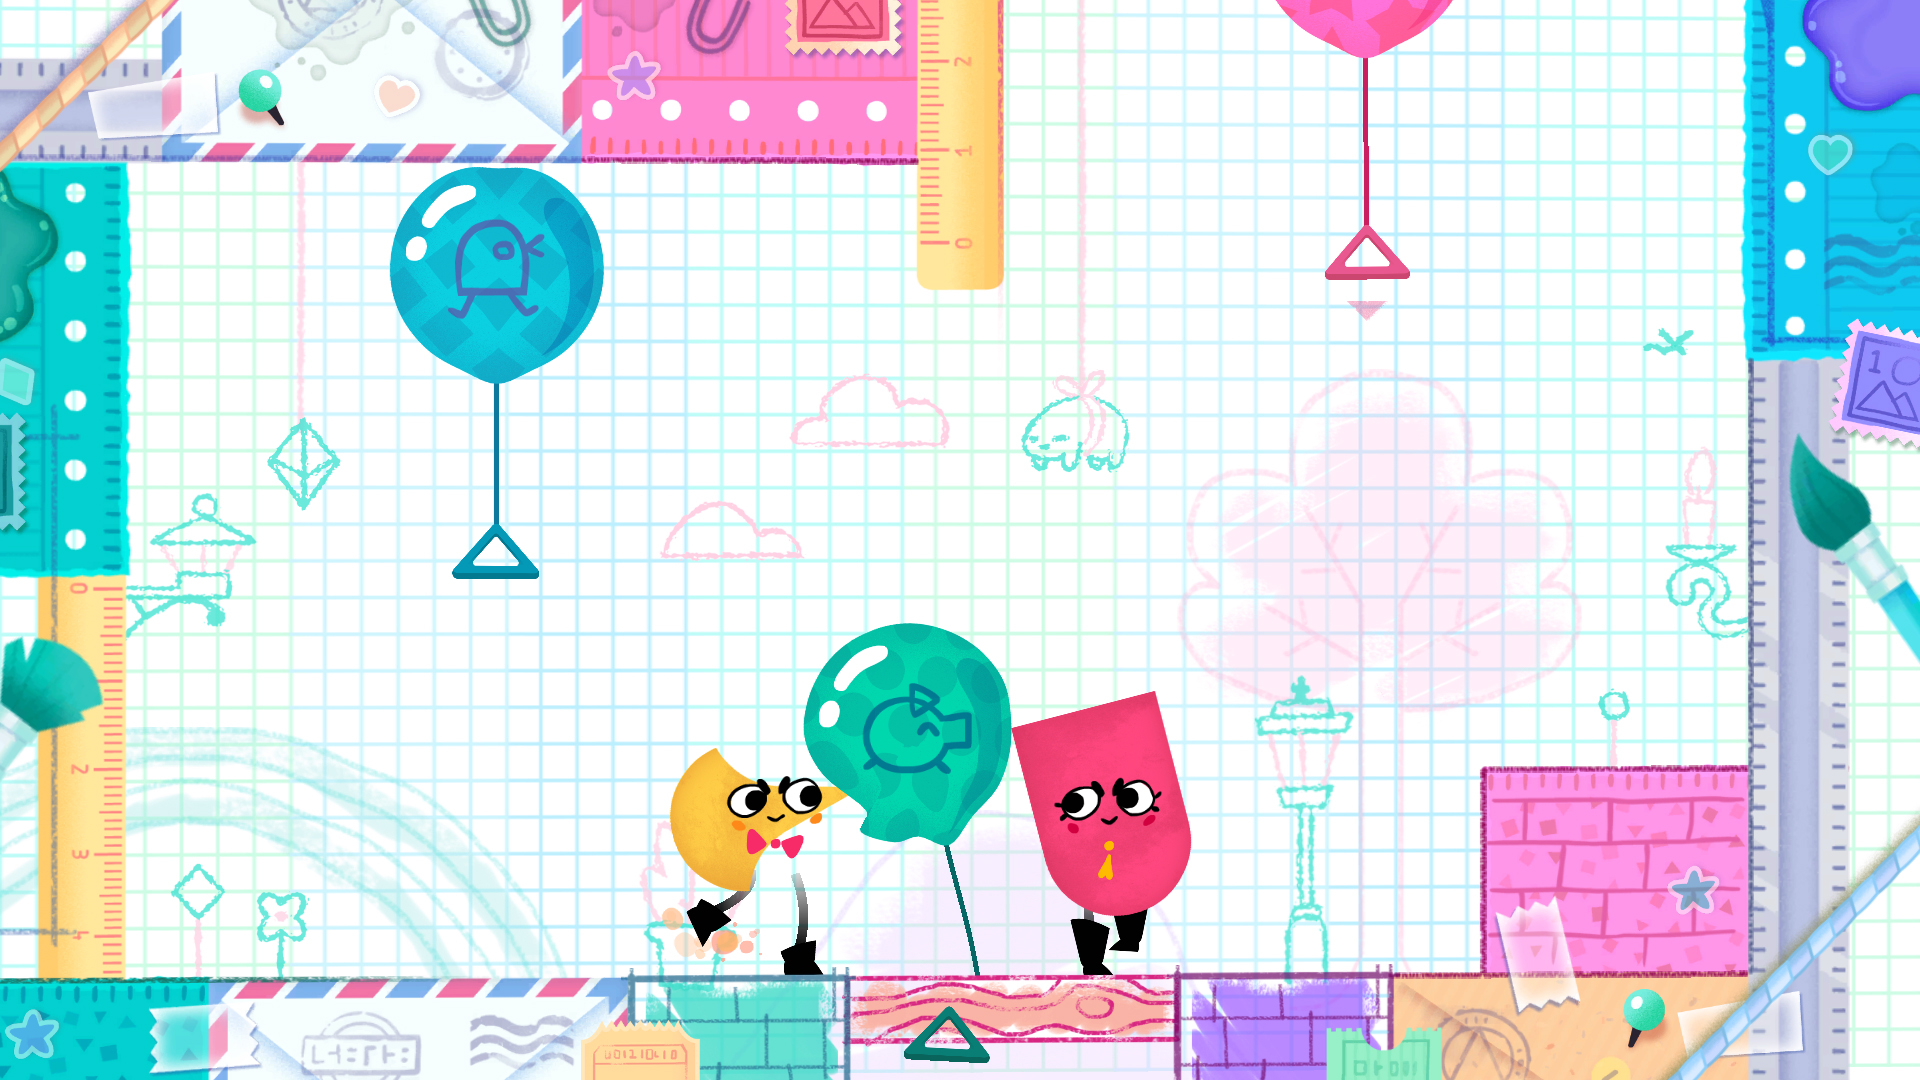 Snipperclips-Cut-It-Out-Together_2017_01-13-17_003